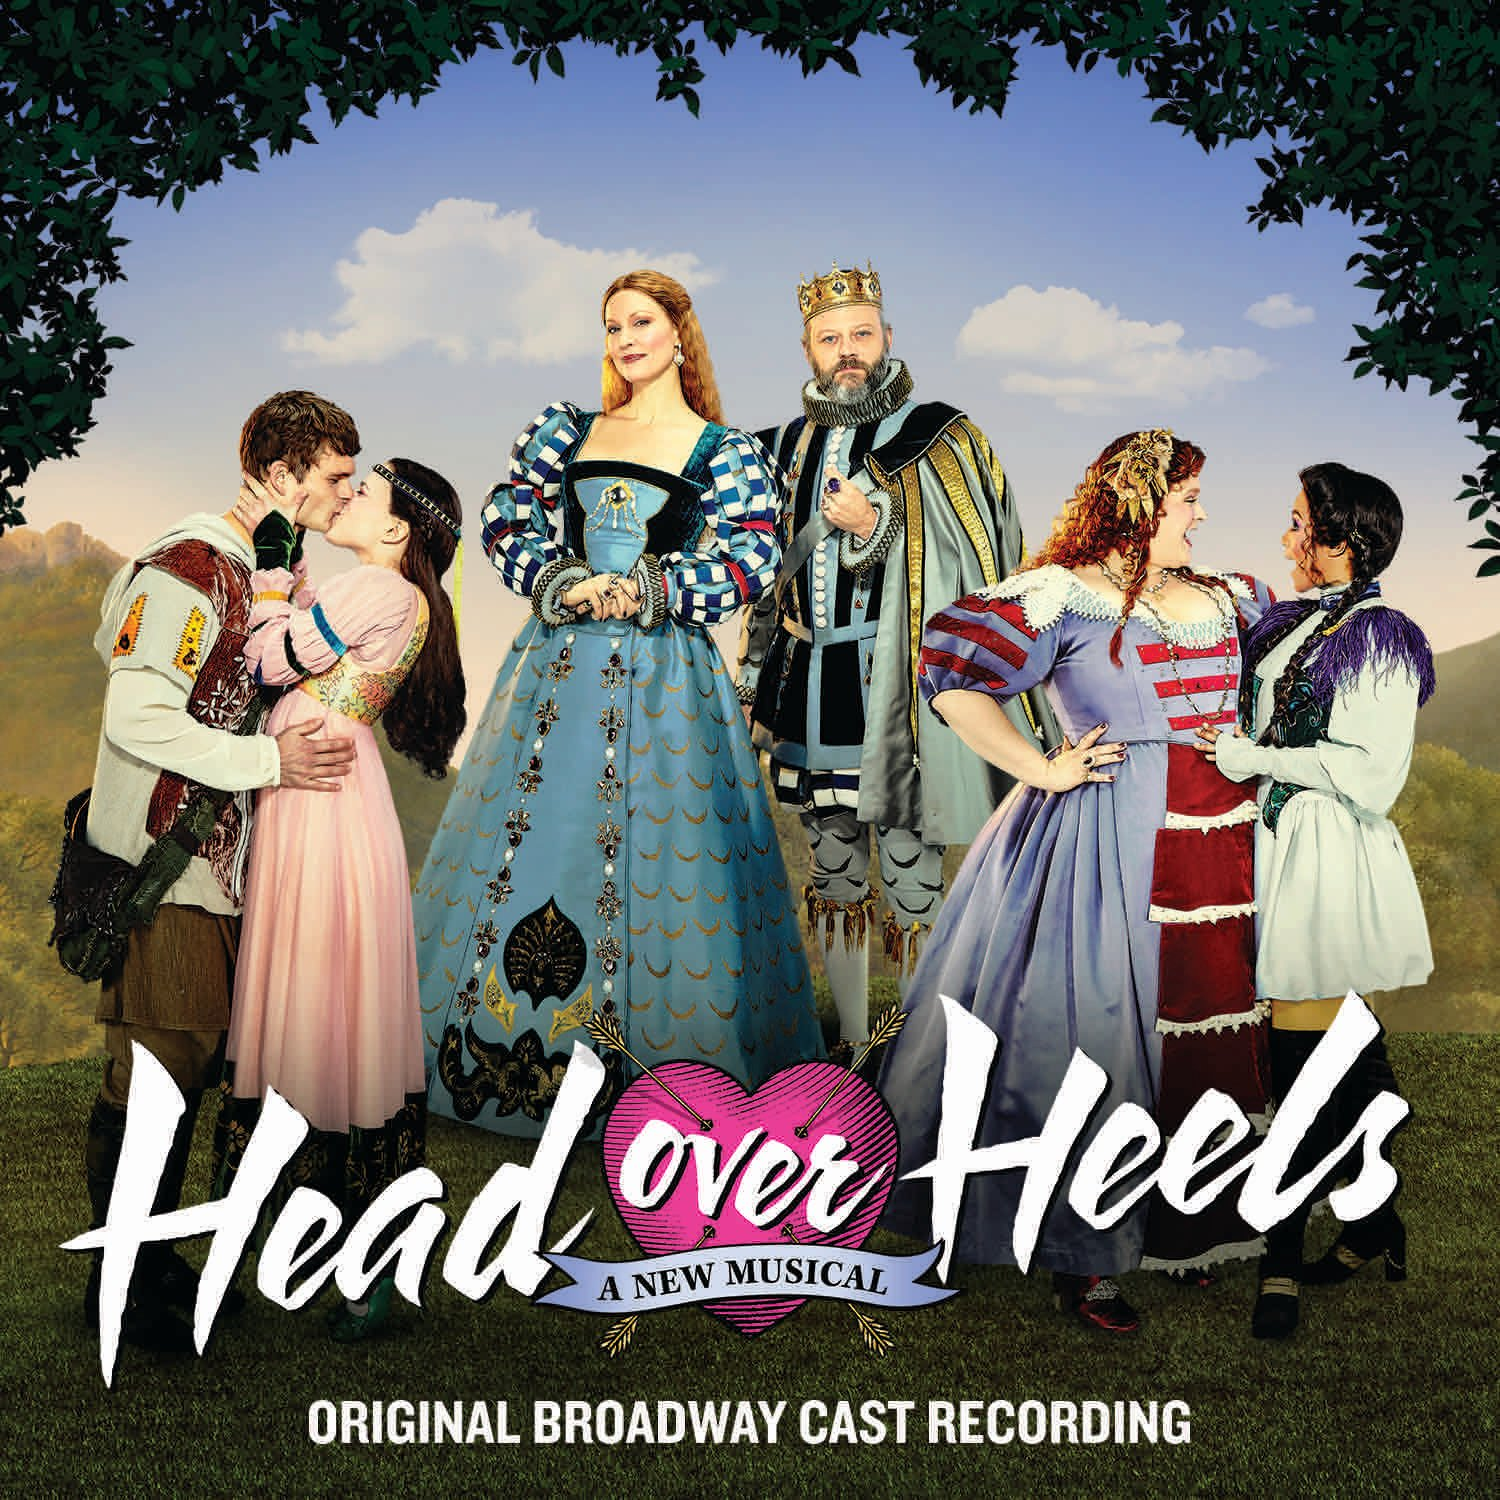 Head Over Heels – A New Musical Original Broadway Cast Recording Album